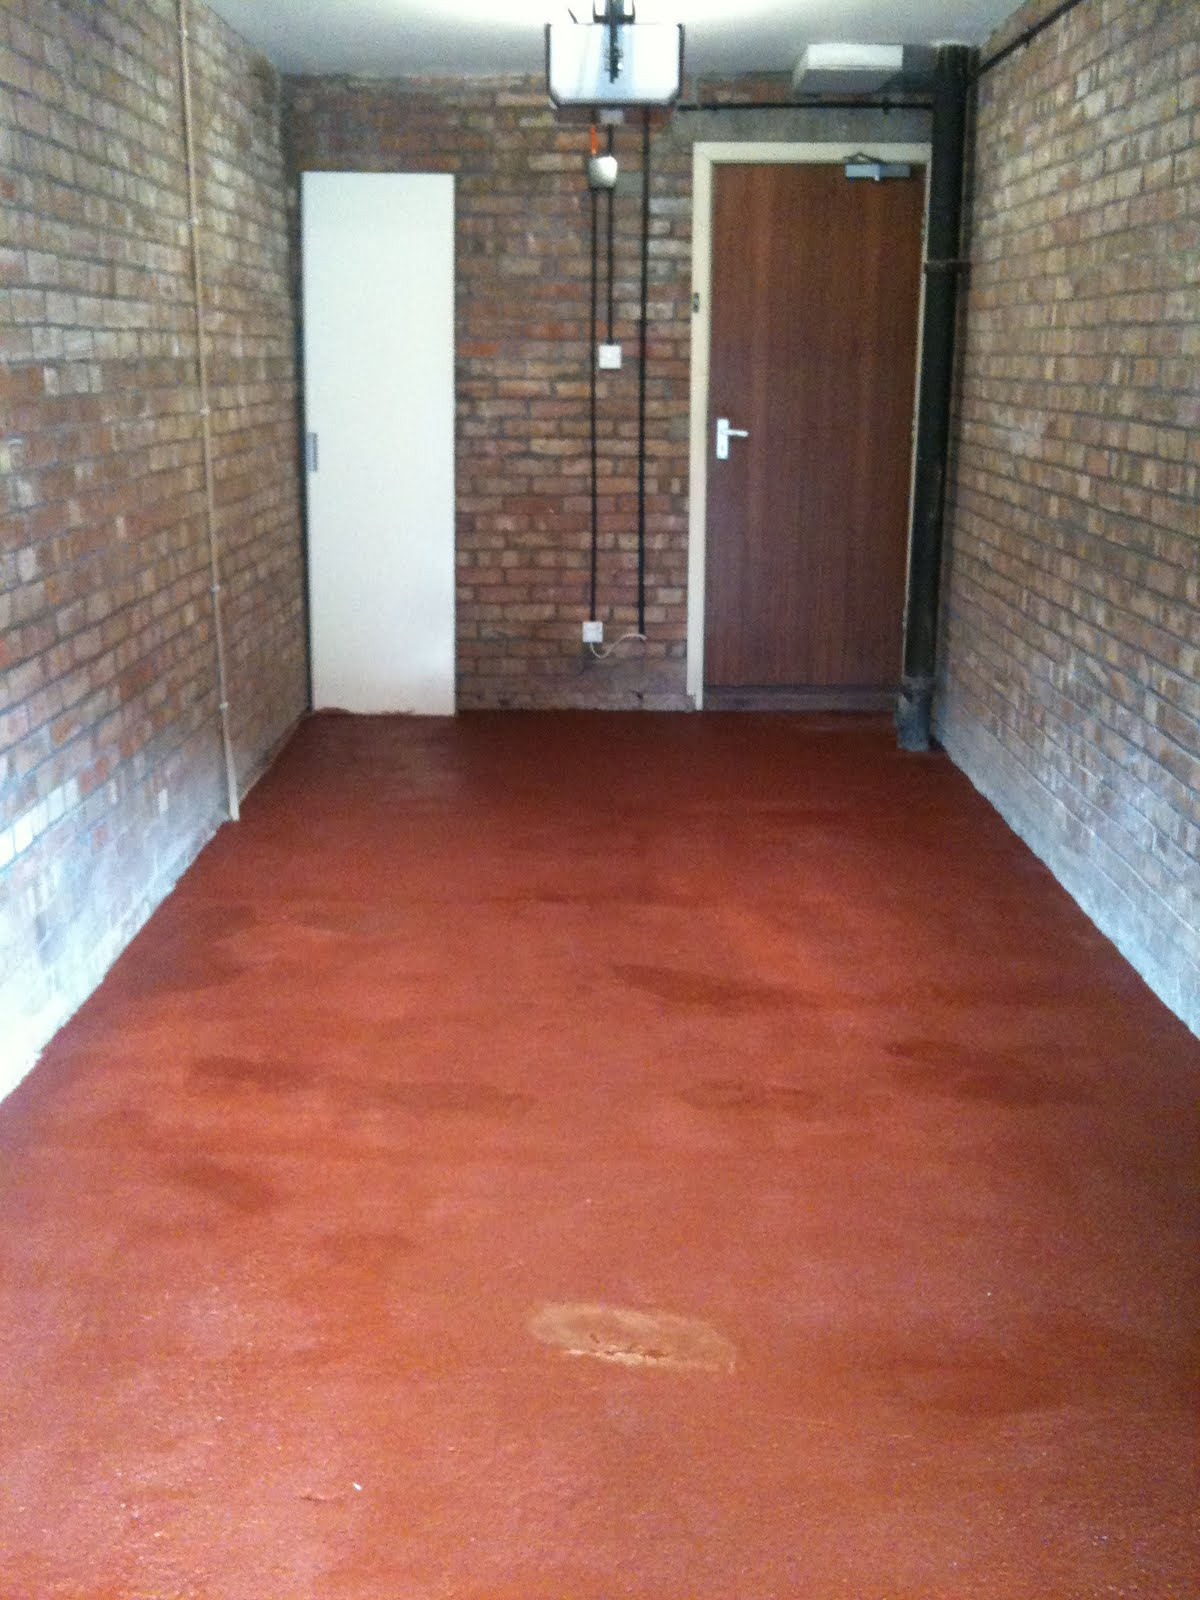 The Ronseal Garage Floor Paint Was Really Easy To Use For First Coat Direct Onto Concrete I Diluted With Water By 20 Ish